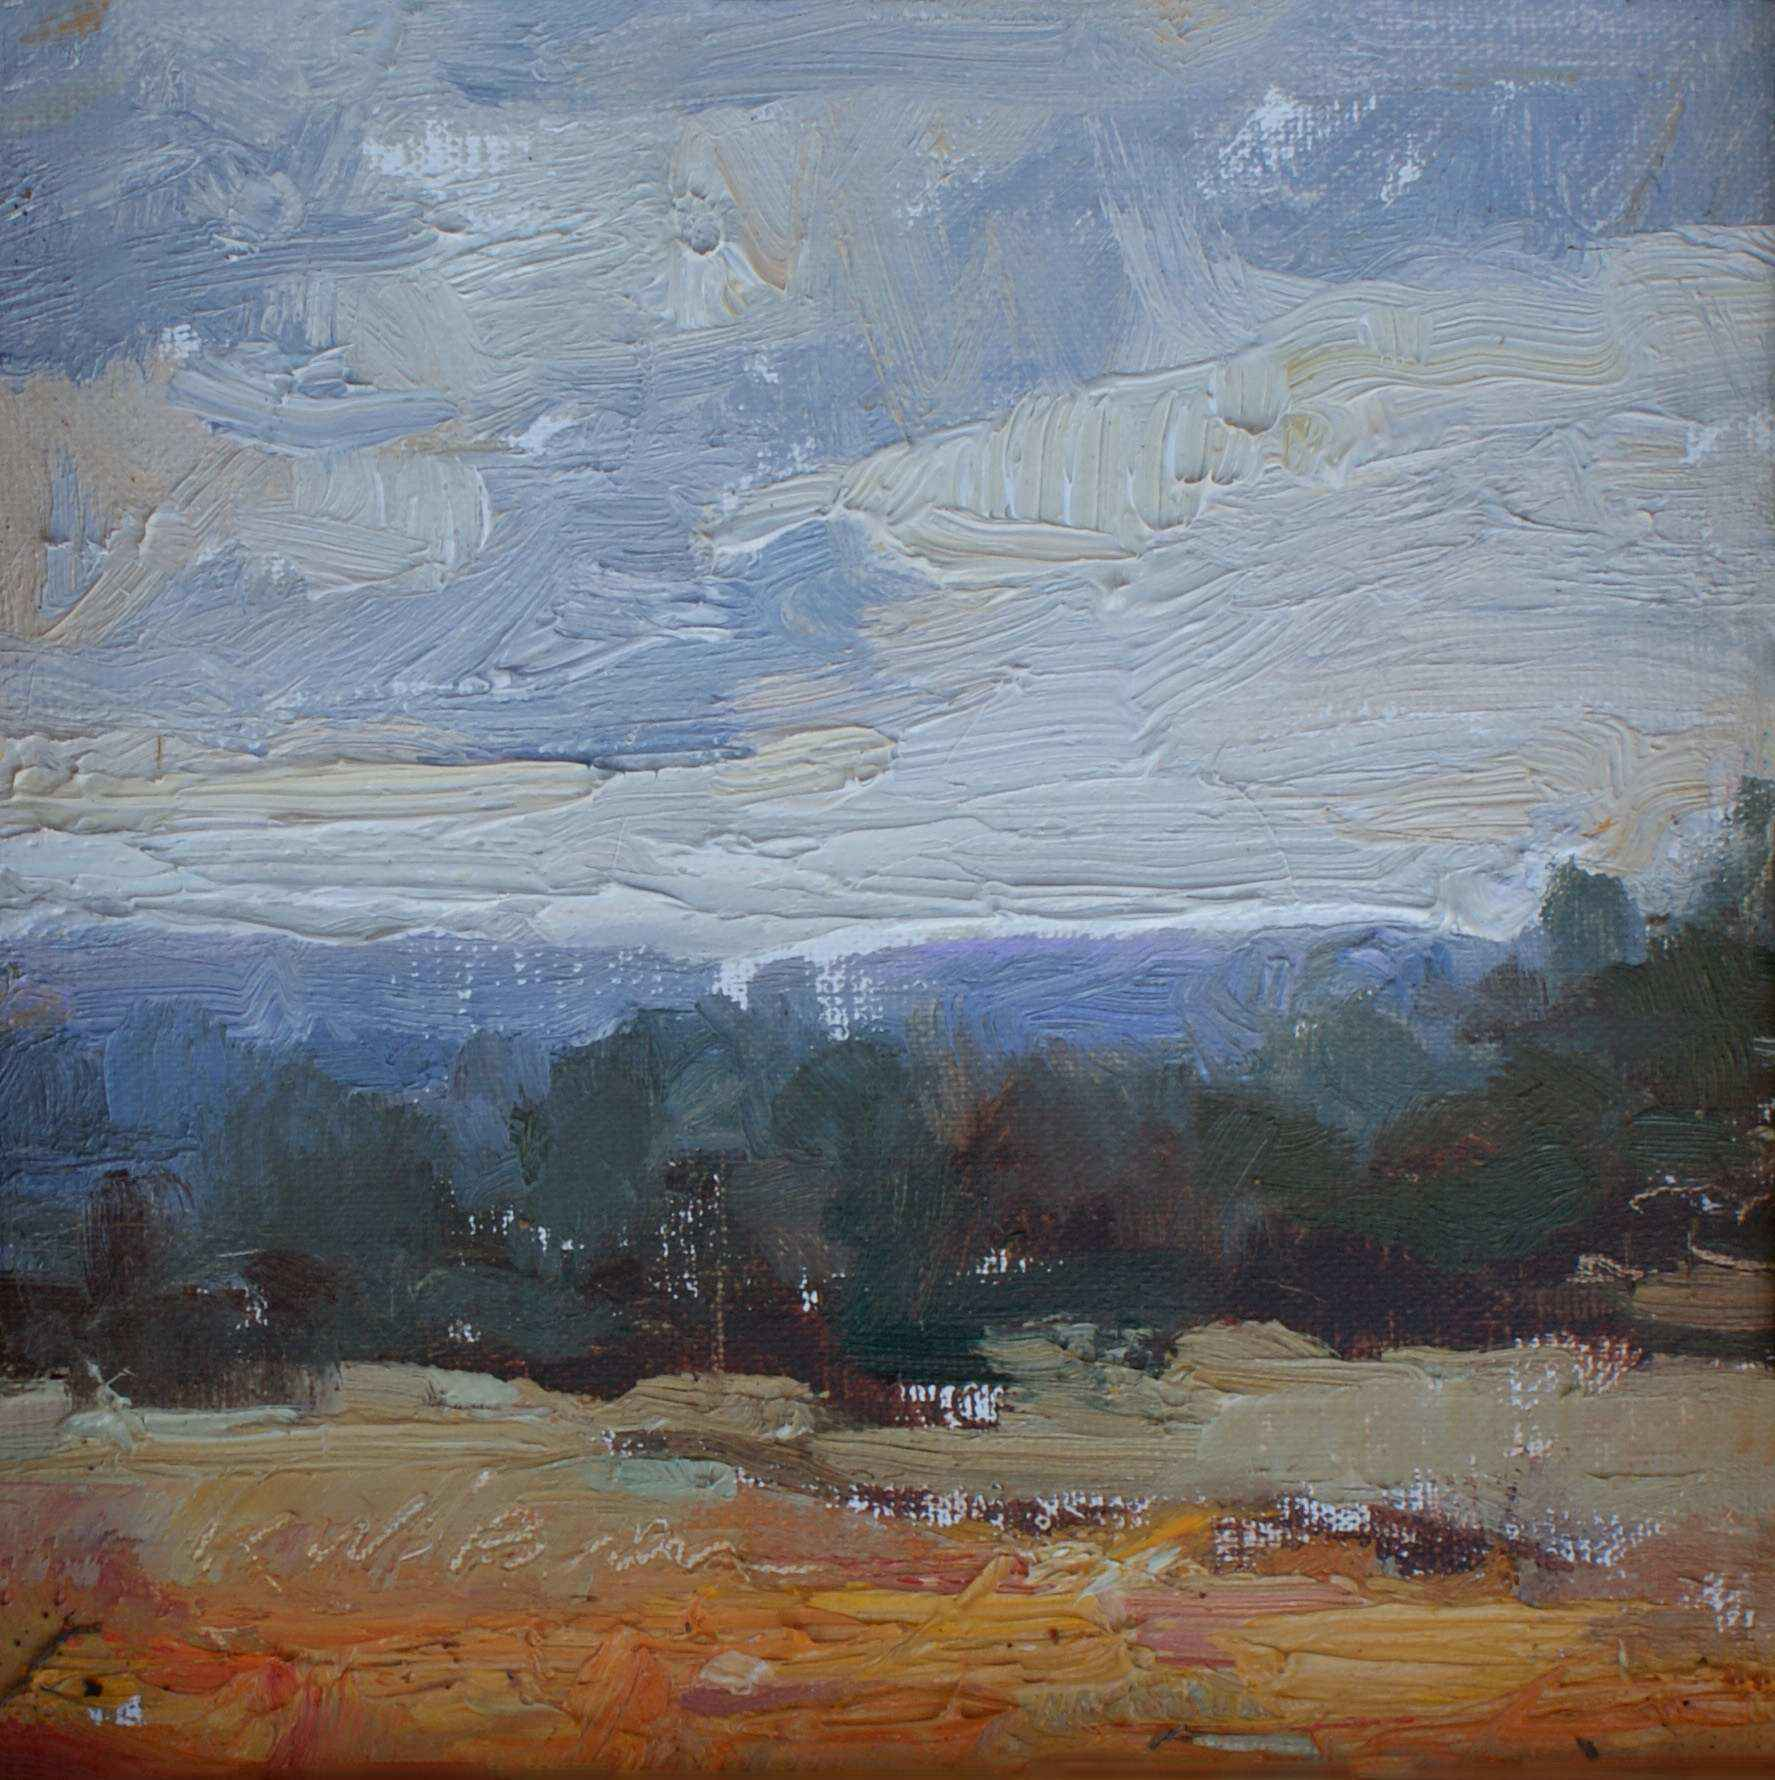 Take the Weather with... by  Krystal Brown - Masterpiece Online